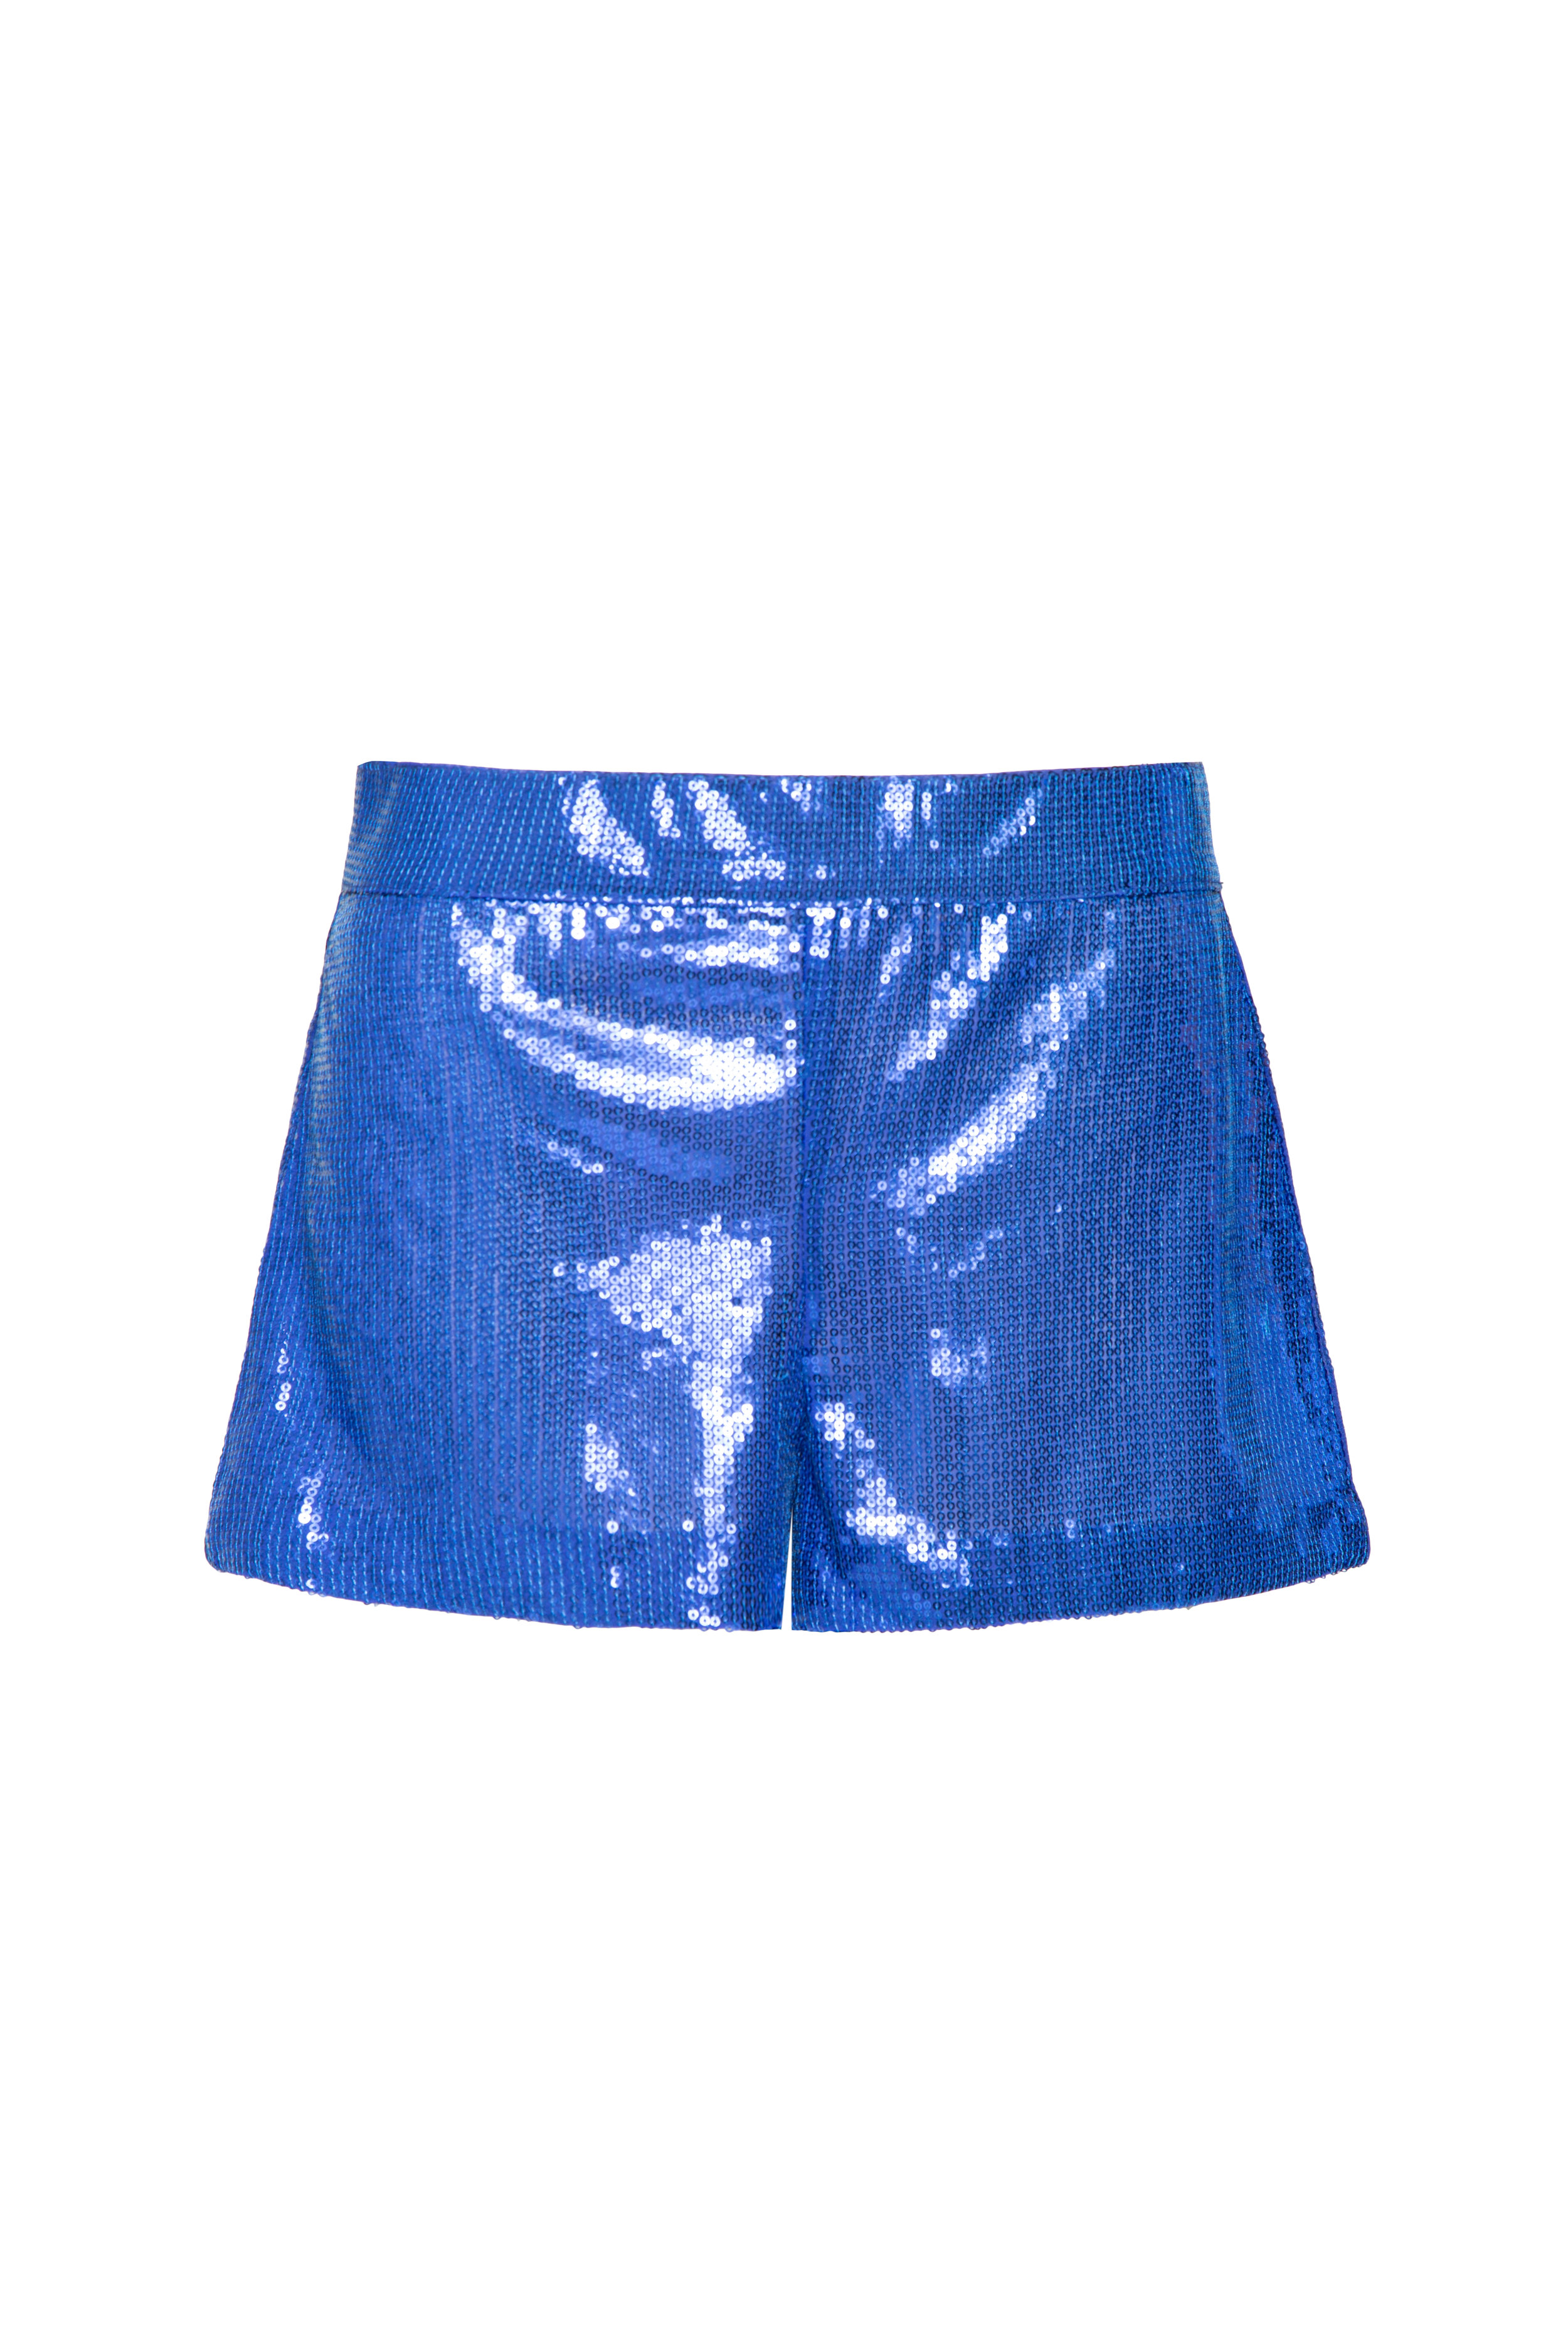 COMPLETE THE LOOK - Jamie Shorts USD 182